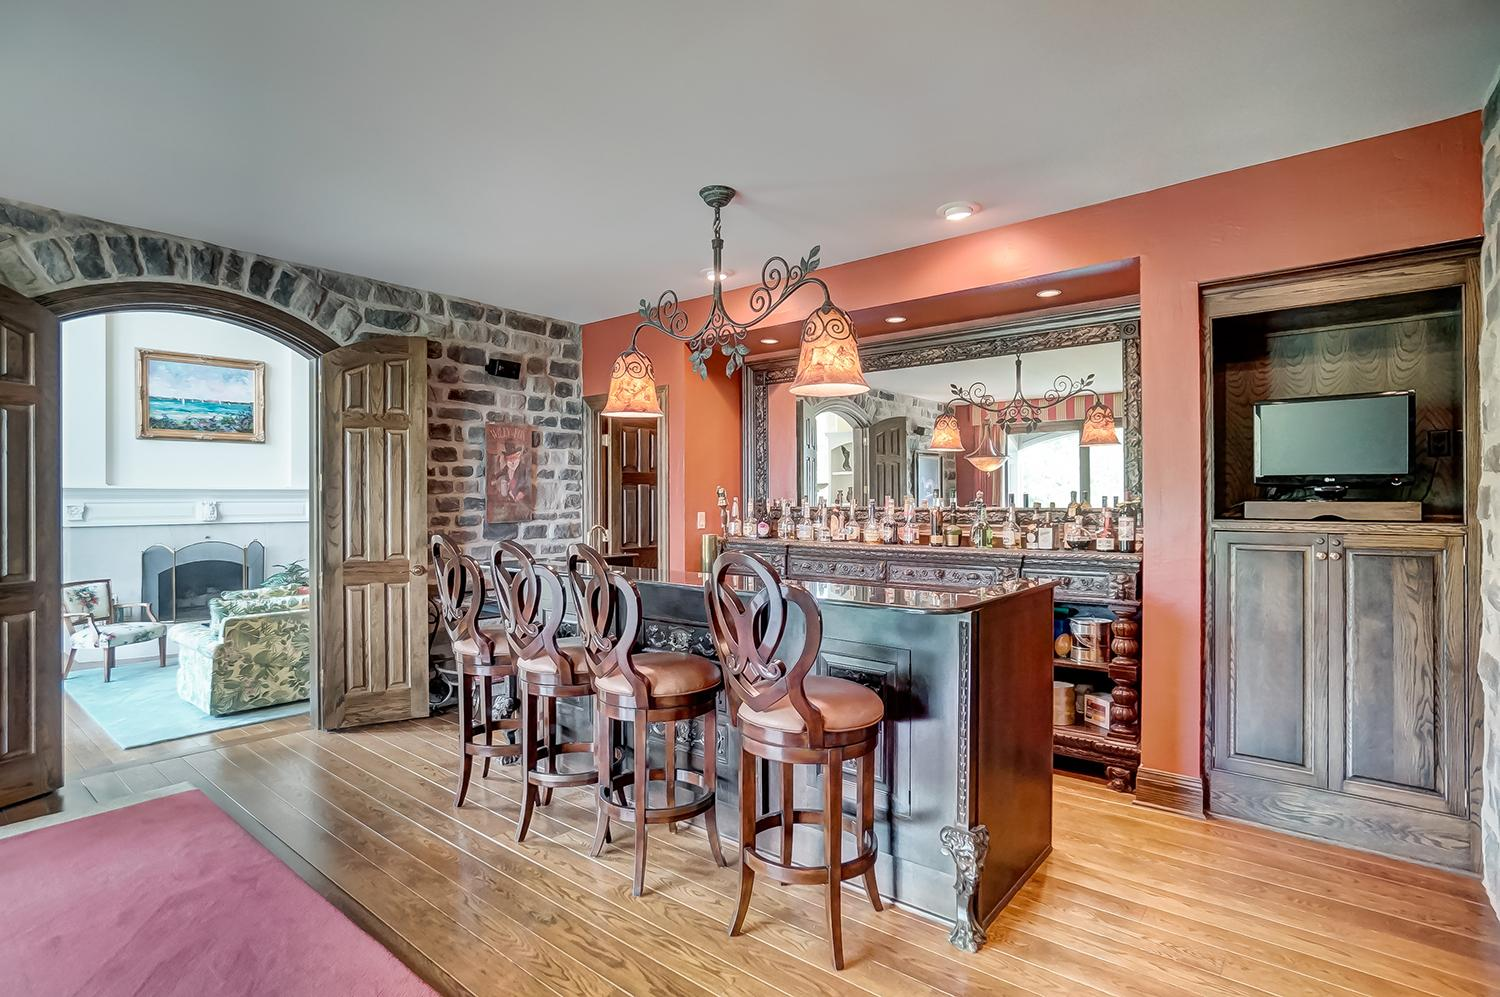 English-style pub room with charming, old stone walls, 100-year-old antique, hand-carved bar from England crowned with granite and seats four comfortably / Image: Wow Video Tours // Published: 6.8.18